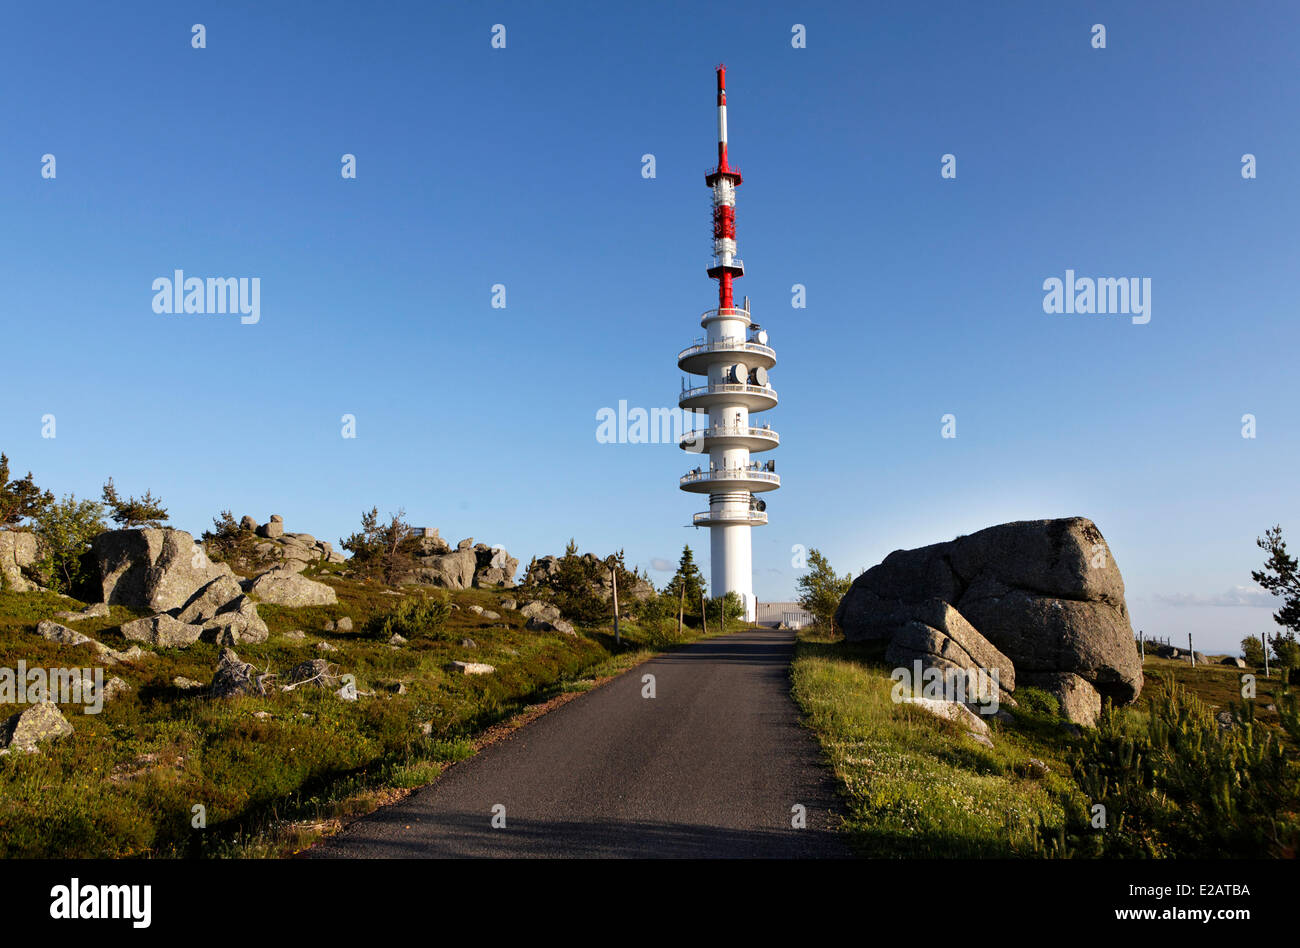 France, Lozere, radio tower at the top of Truc Fortunio, culminating mountains of Margeride - Stock Image